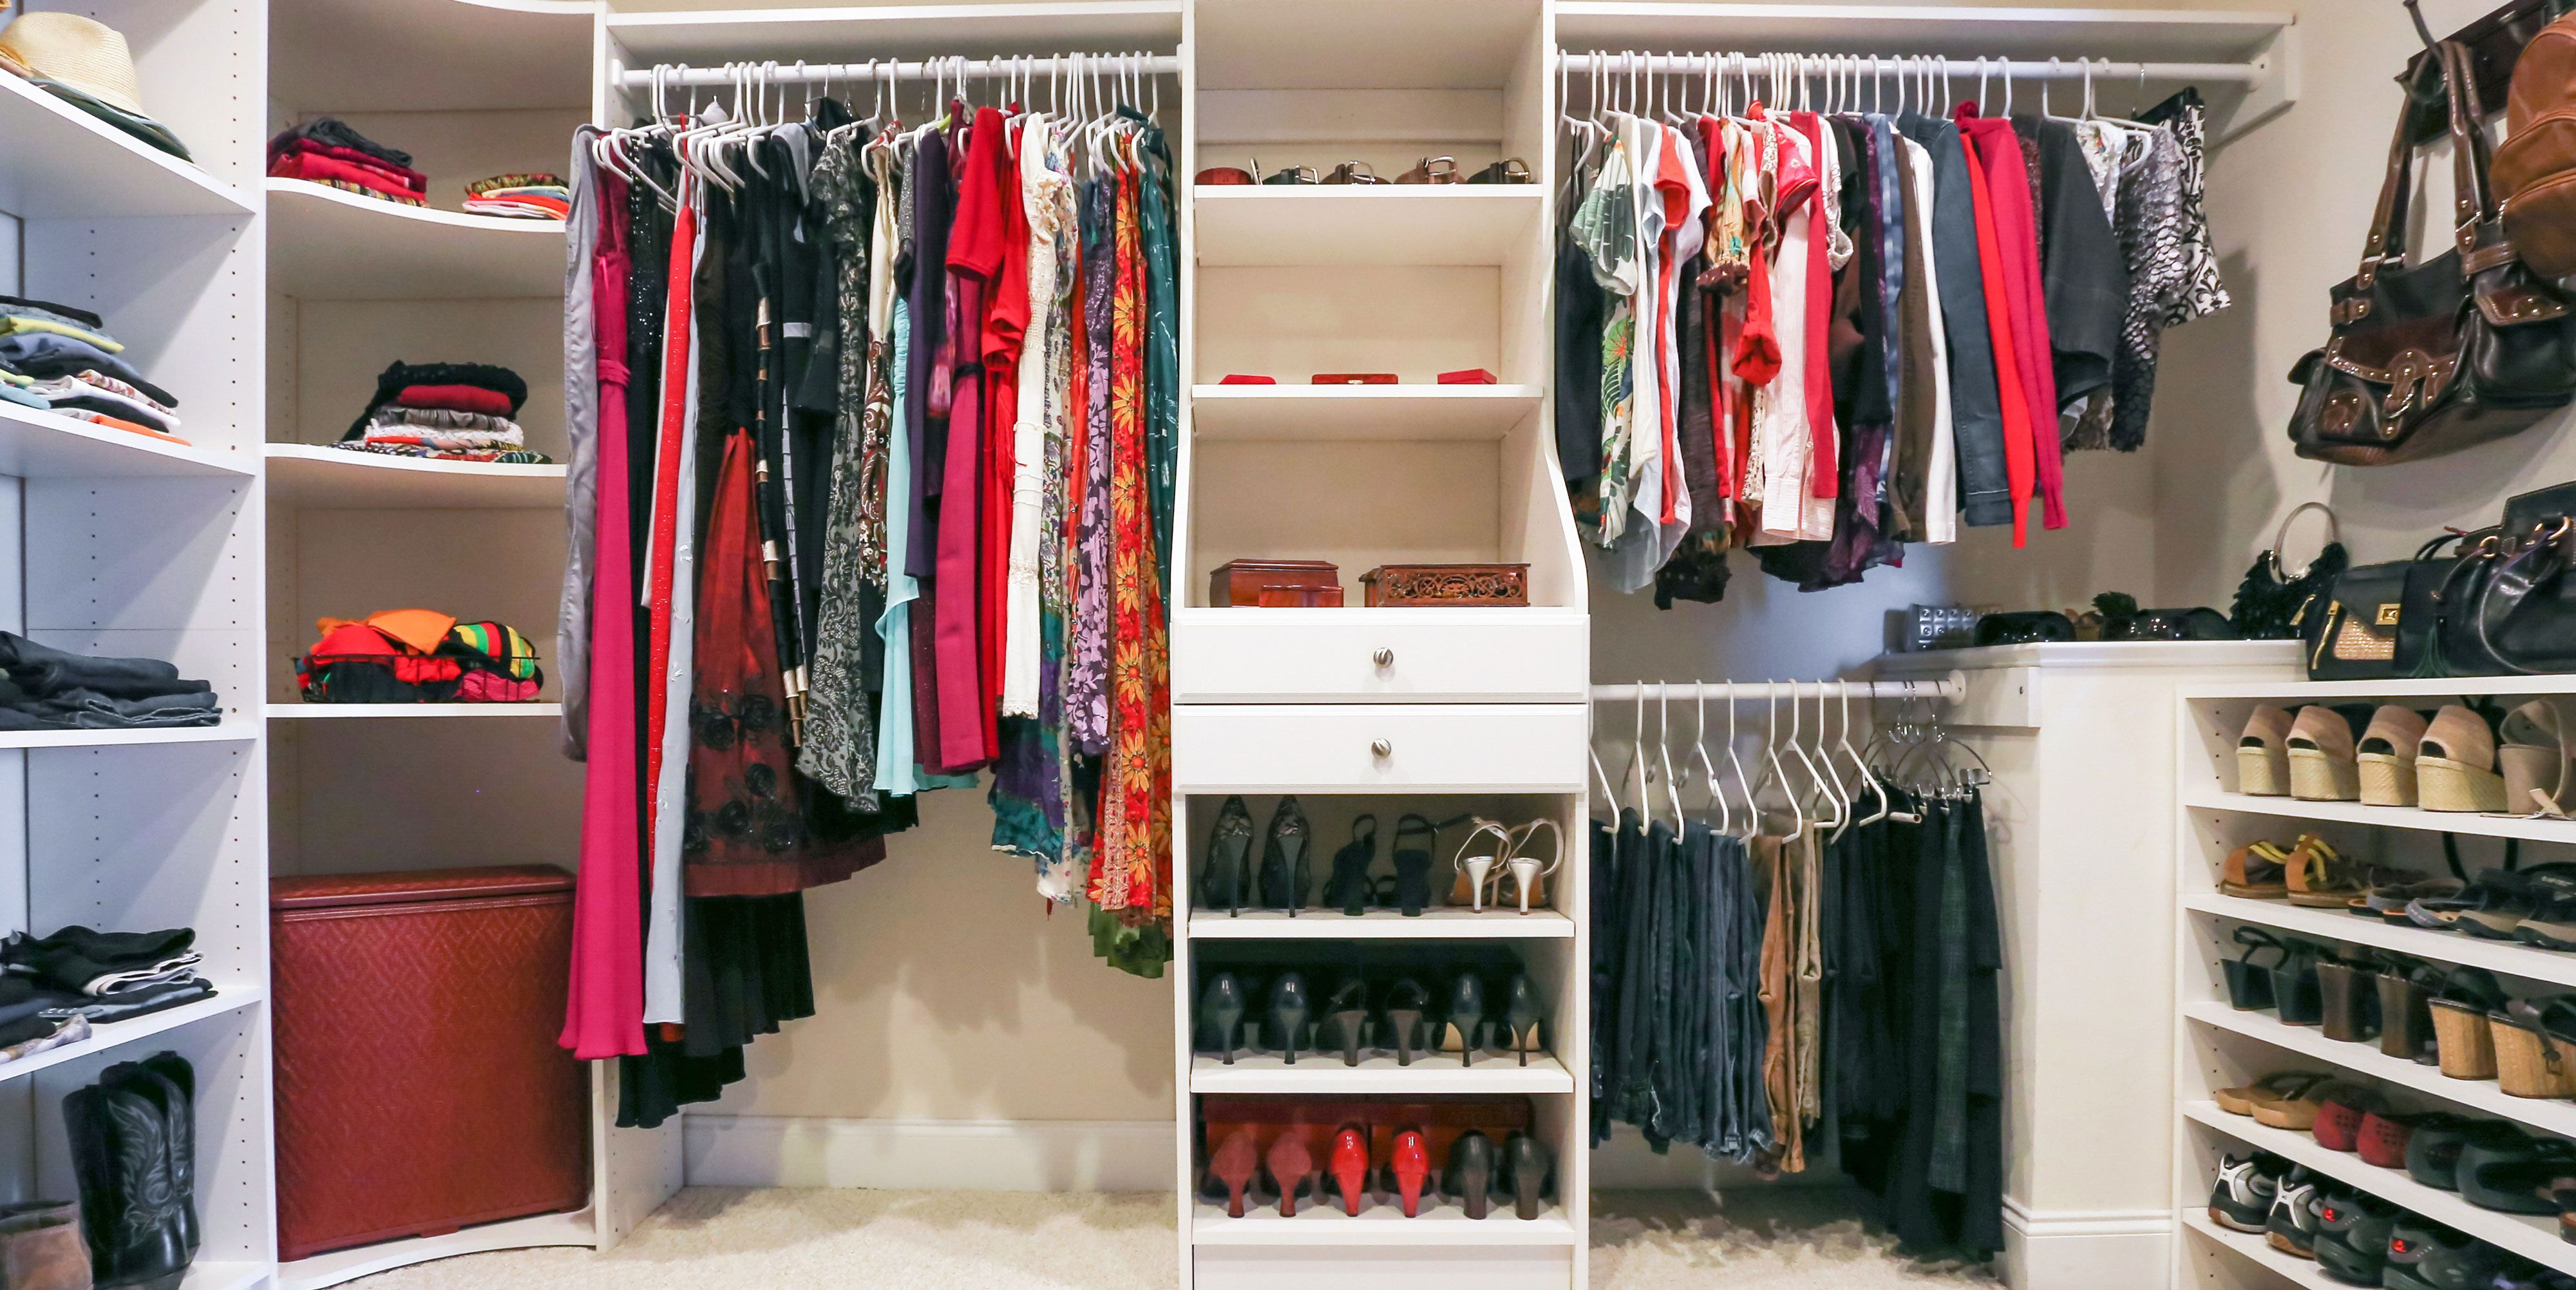 tumblr closet co a pcok room